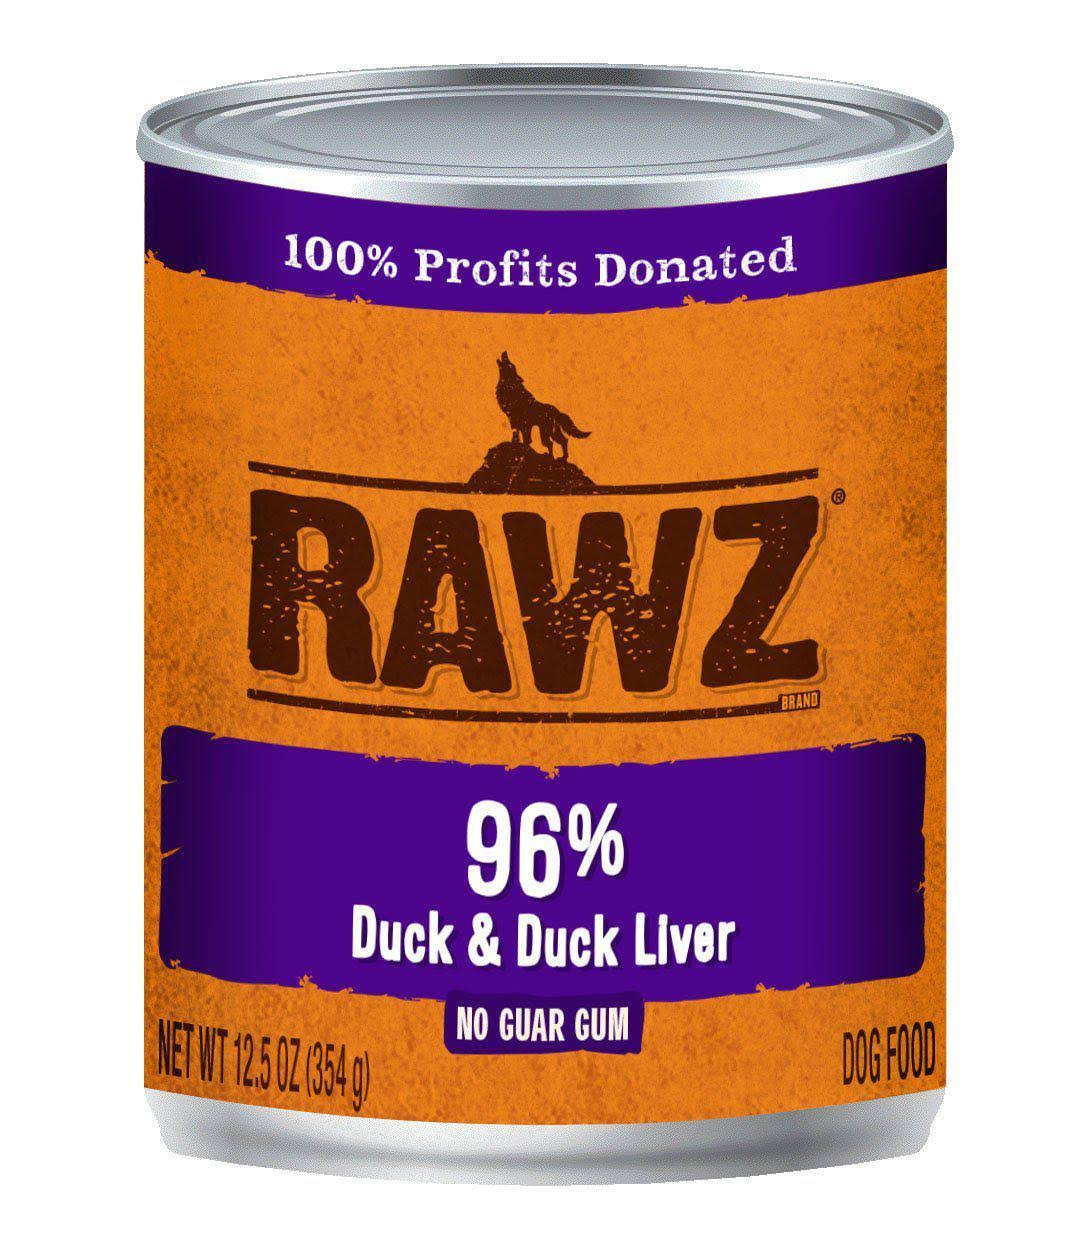 Rawz 96% Duck & Duck Liver Dog Food Can | Tomlinson's Feed 12.5 oz